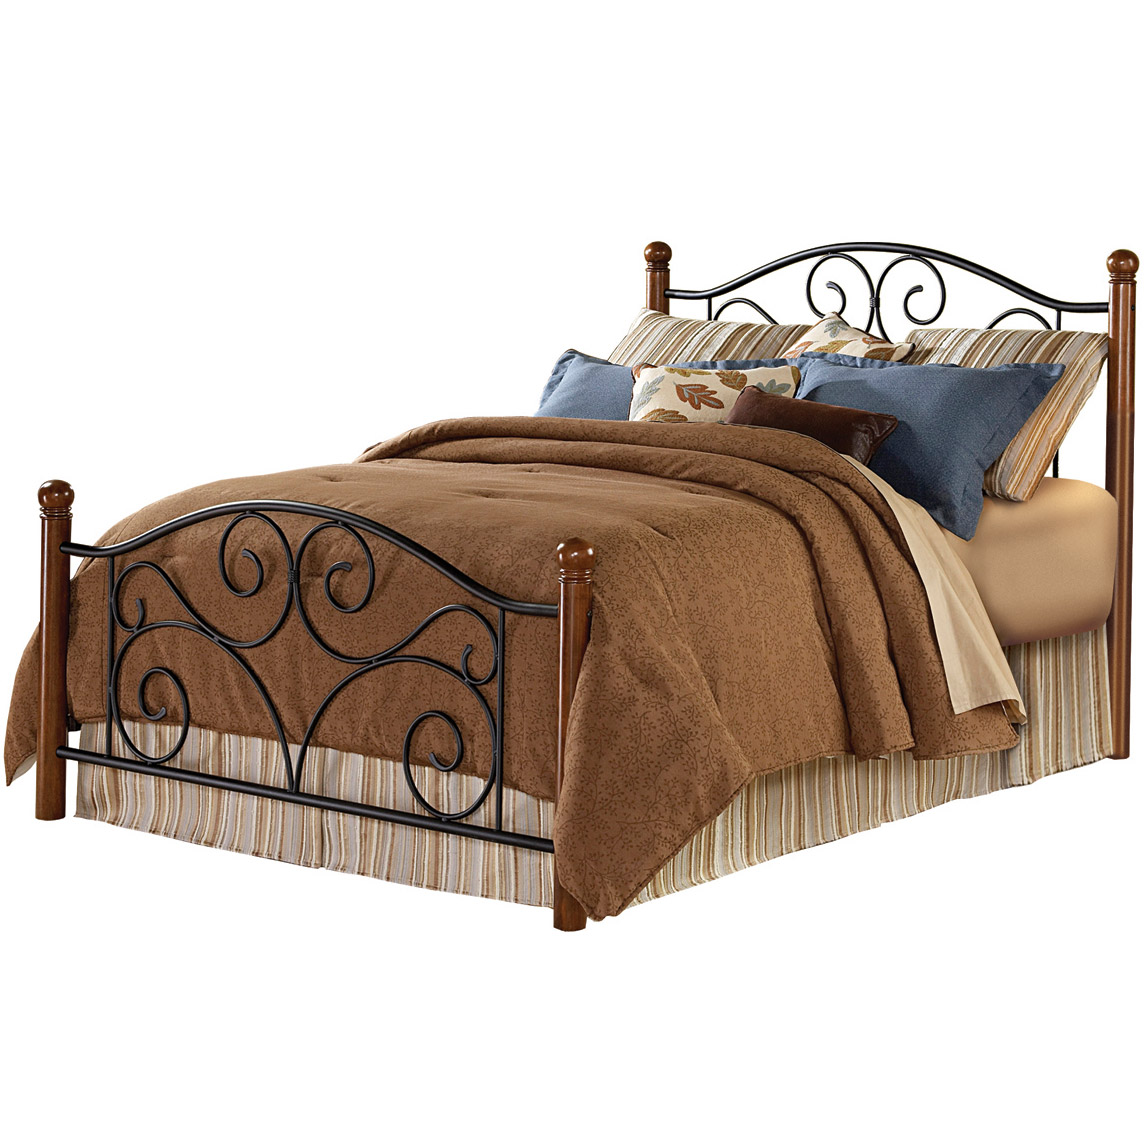 King Bed With Posts Doral Iron Bed Matte Black Finish And Wooden Walnut Posts